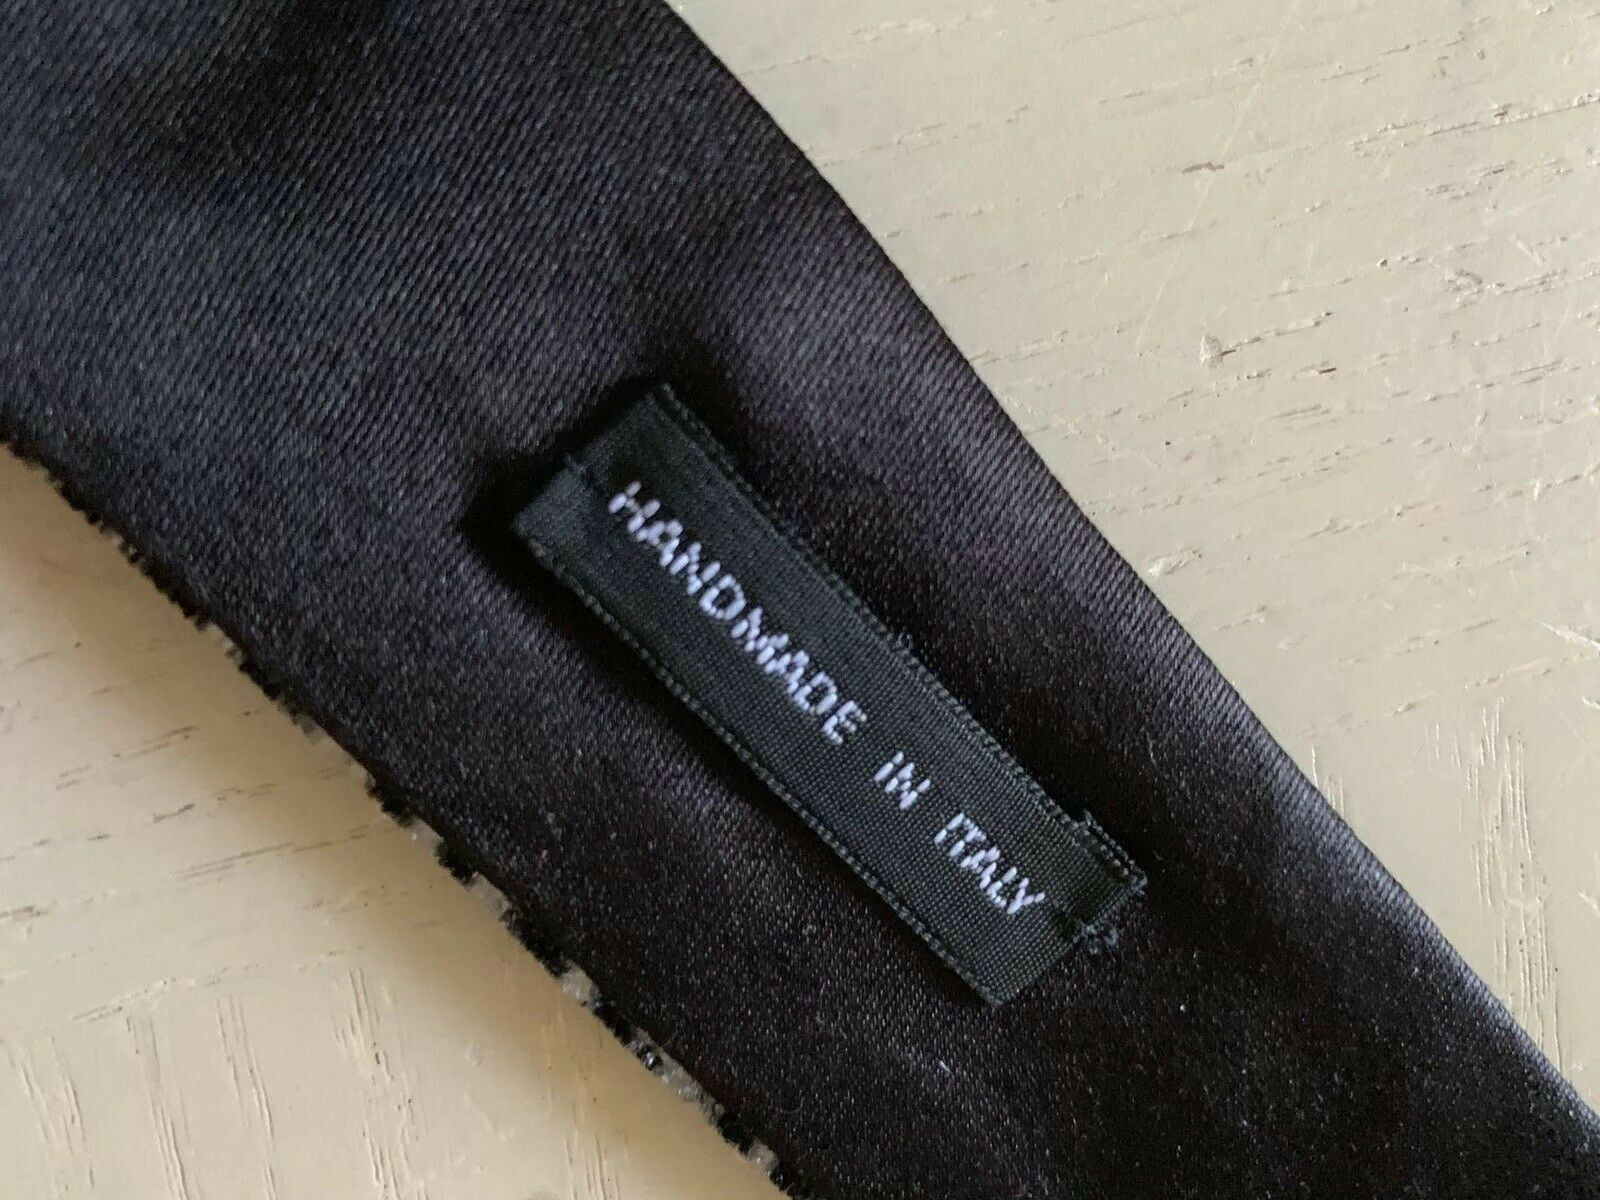 New $445 Giorgio Armani Neck Tie Black Hand made in Italy